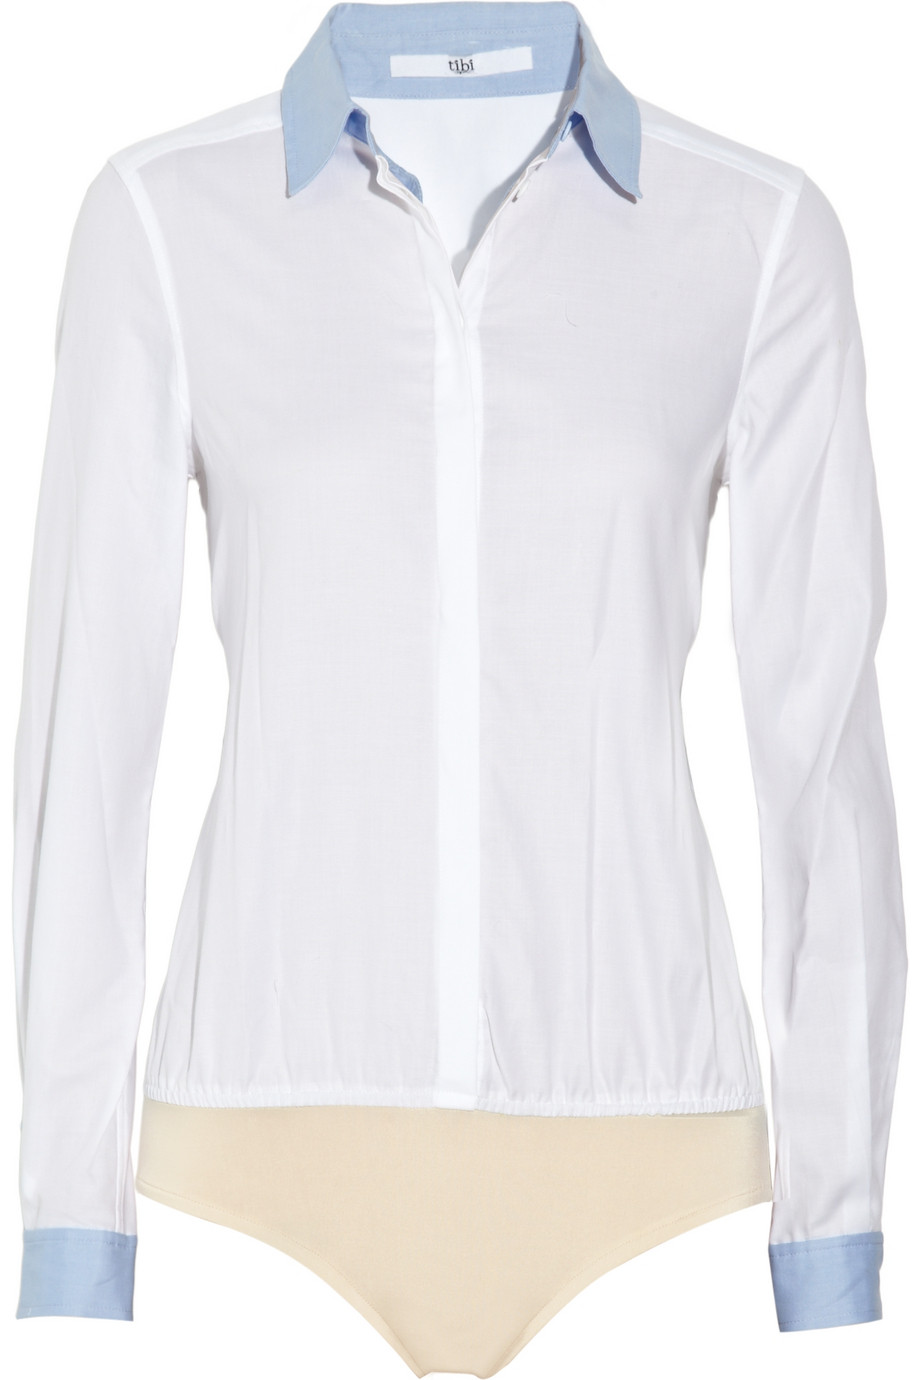 2fa0b622c13c Lyst - Tibi Cotton-twill Shirt-style Bodysuit in White